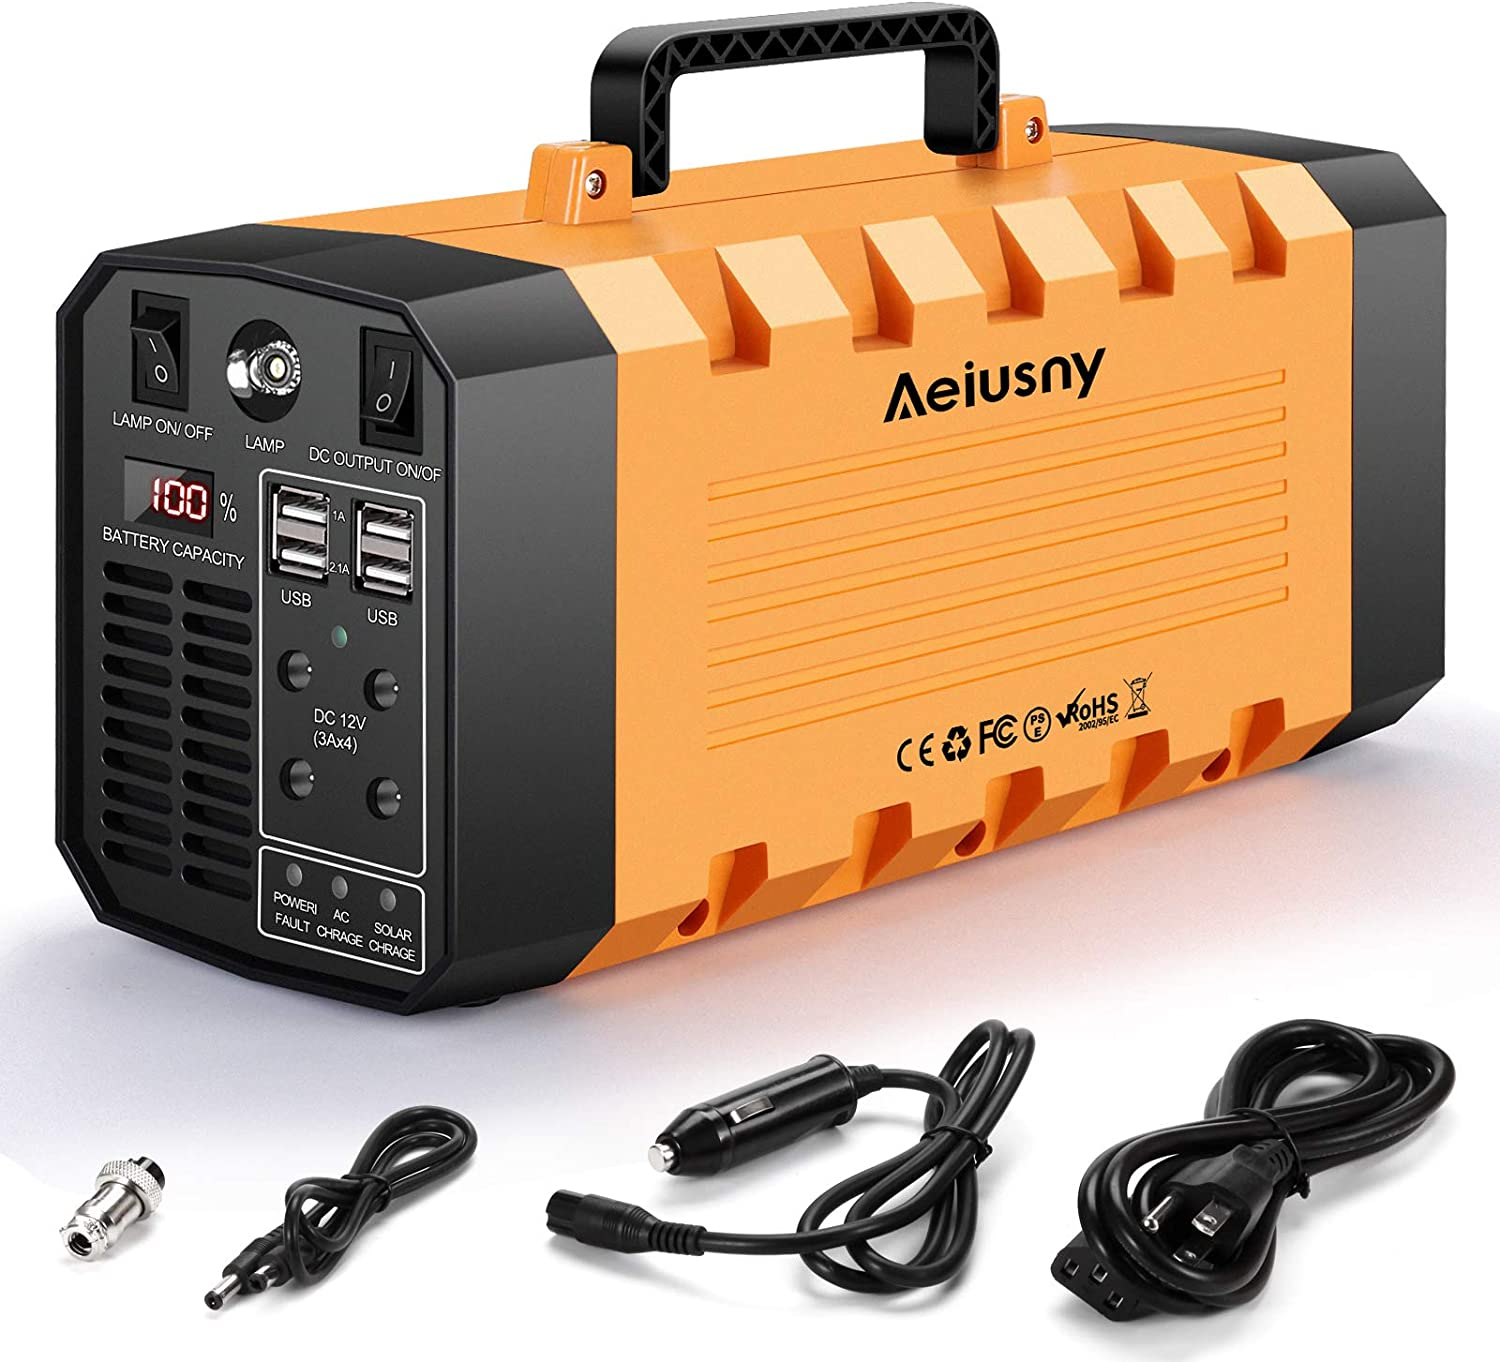 3 DC Ports 2 USB Outputs for Home Emergency Camping CPAP Outdoors AIPER Portable Power Station 167Wh 45000mAh Solar Generator Lithium Battery Backup Power Supply with Dual 110V AC Outlet